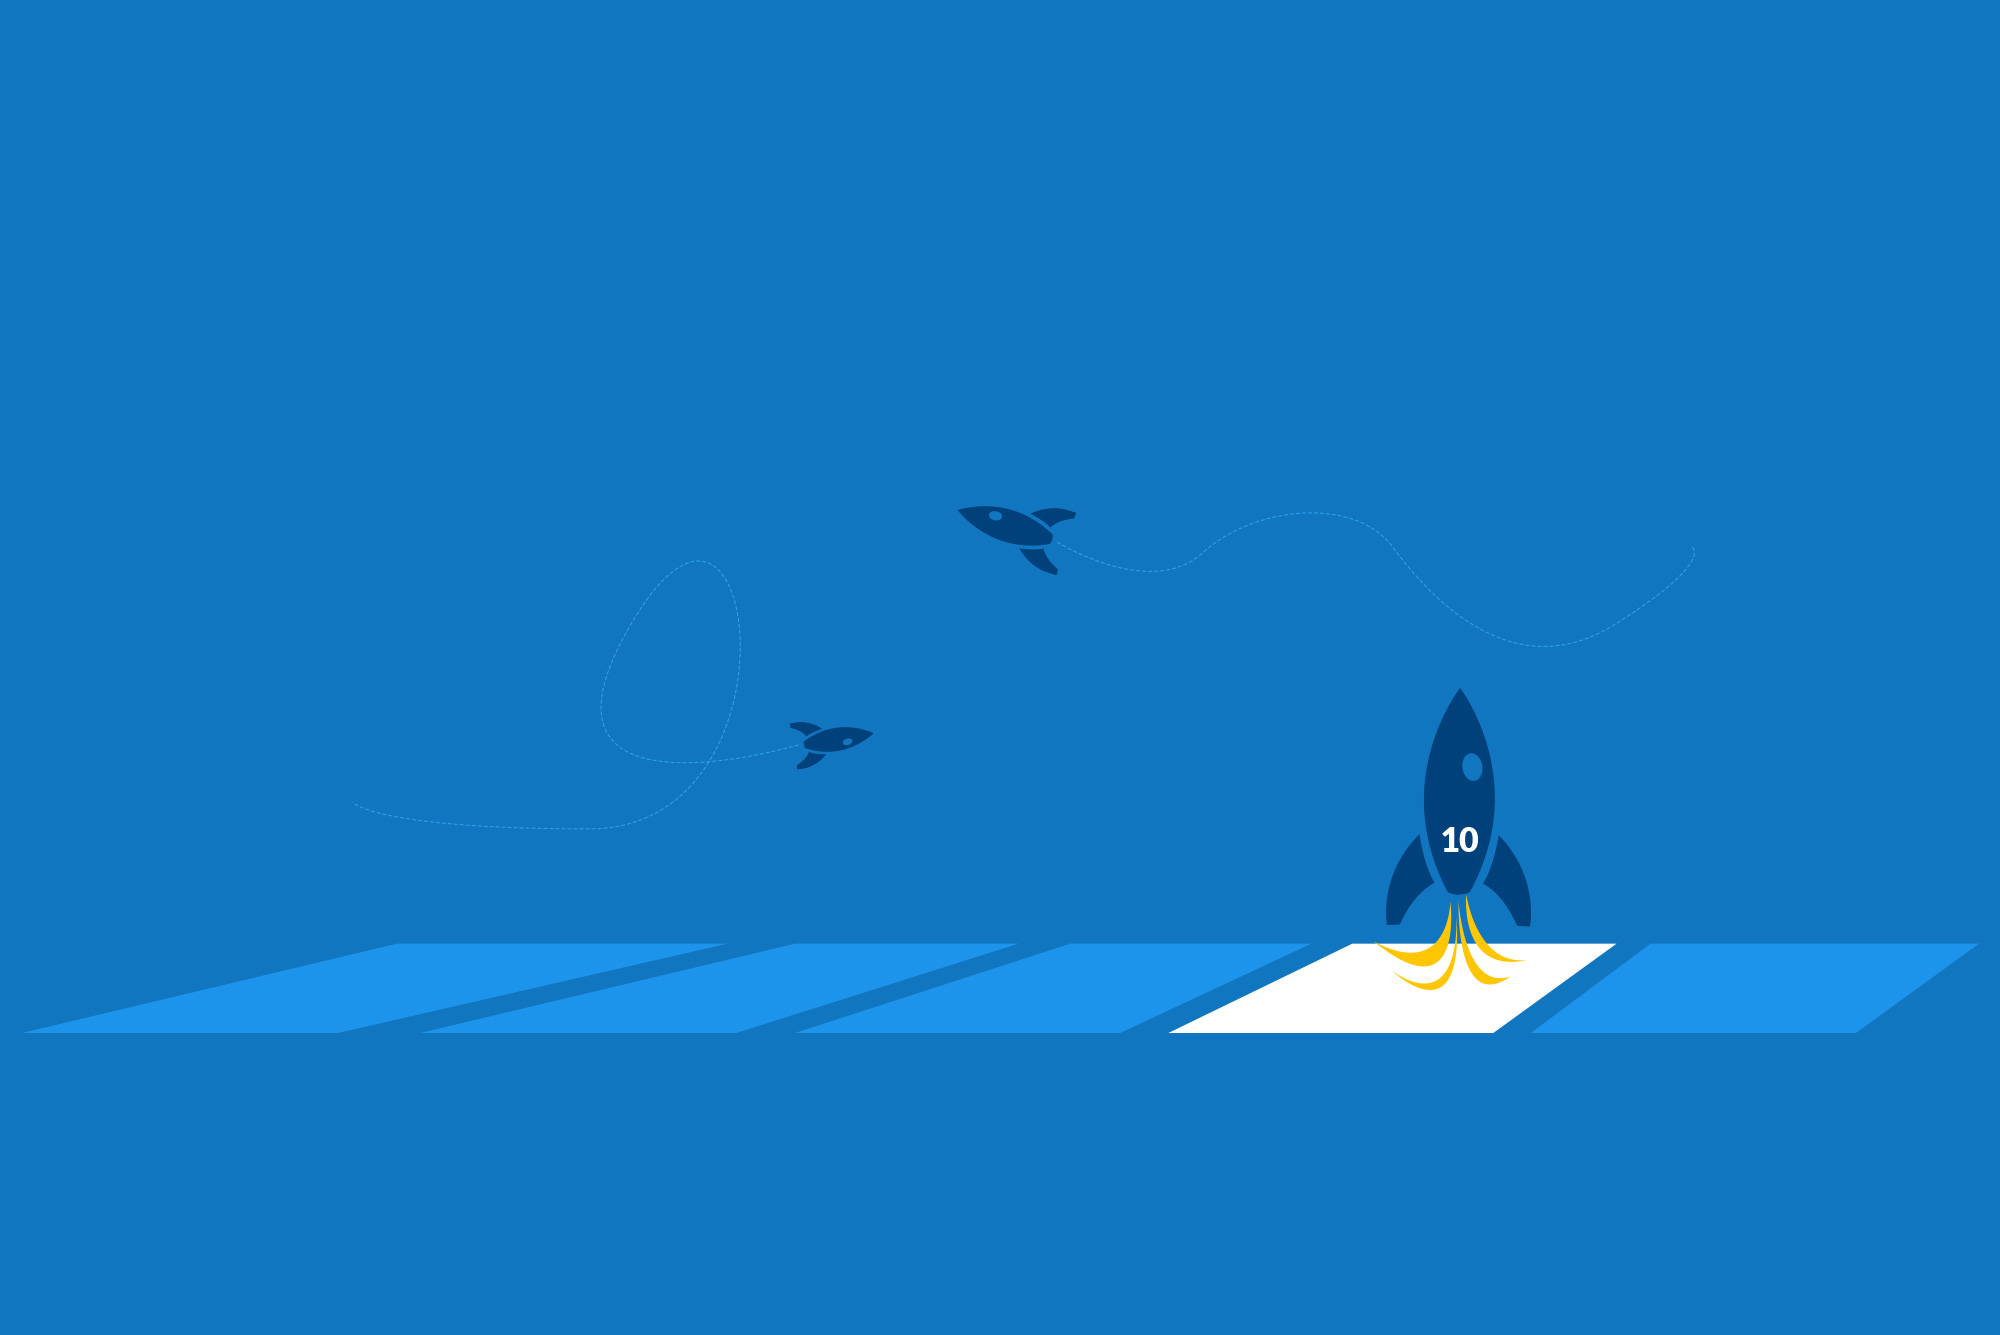 Rocket landing on blue background - Homepage is dead